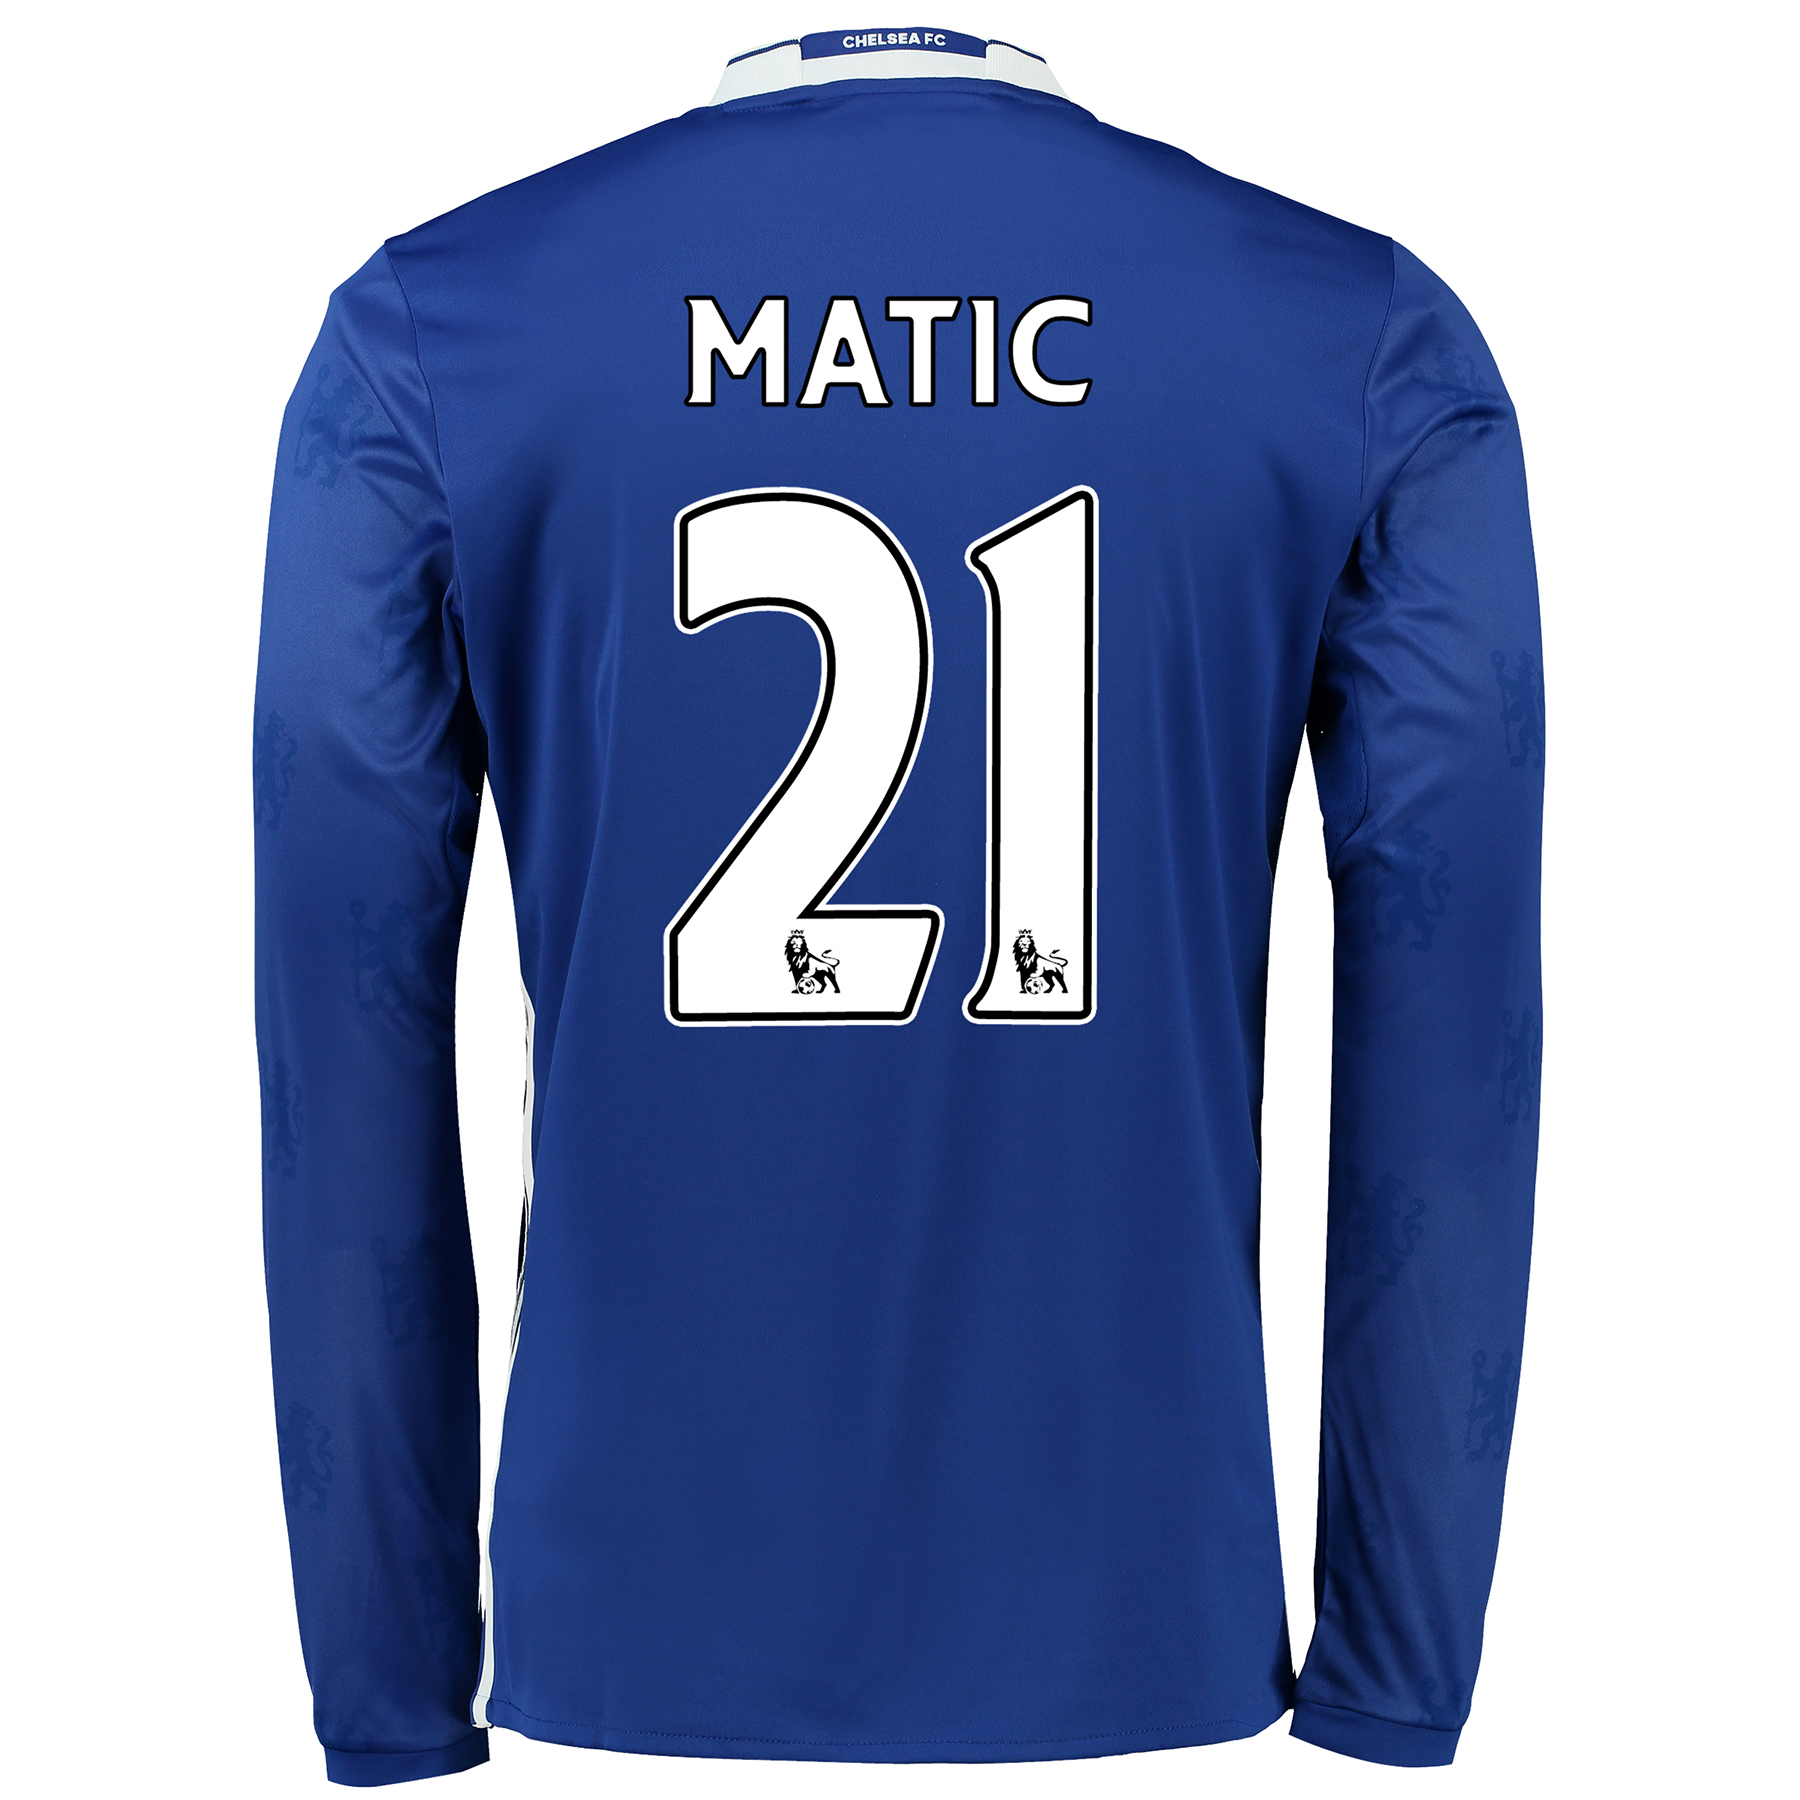 Chelsea Home Shirt 2016-17 - Long Sleeve with Matic 21 printing